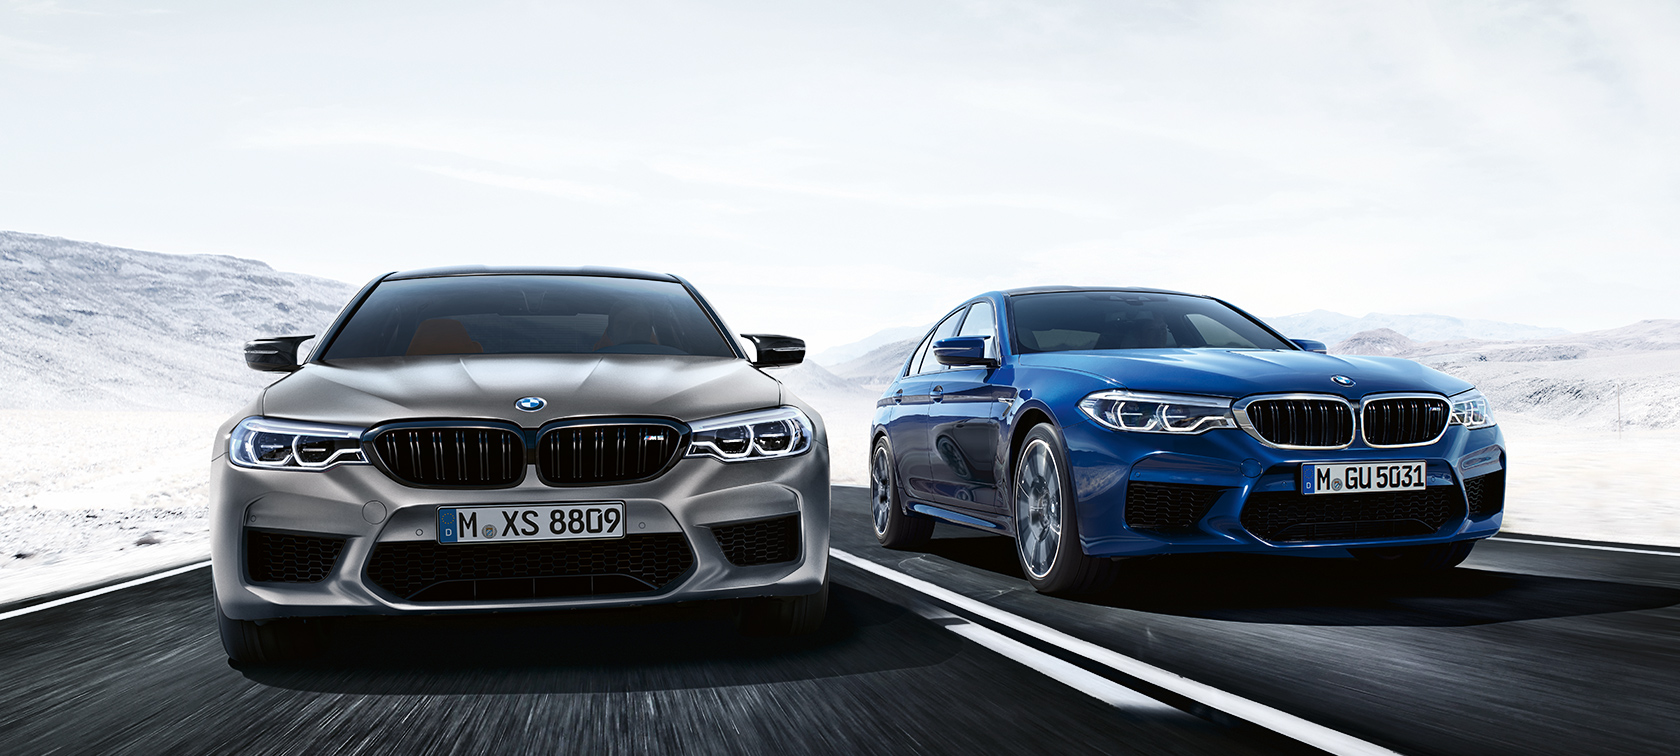 BMW M5 Sedan: grey and blue metallic cars are driving on highway in the snow.